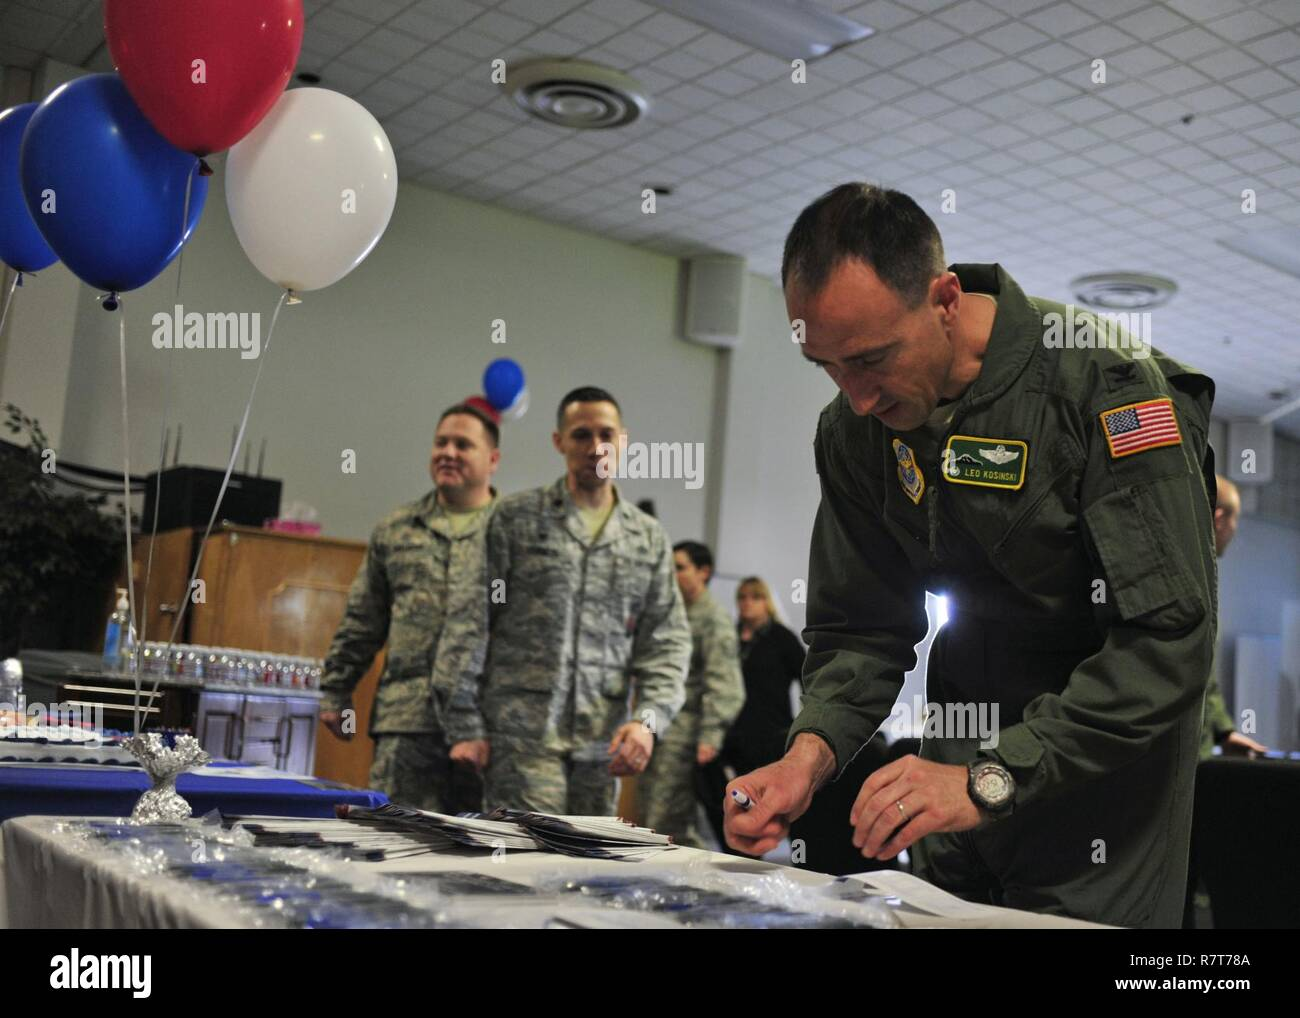 Col. Leonard Kosinski, 62nd Airlift Wing commander, fills out an Air Force Assistance Fund donation form at the AFAF kick-off event, April 6, 2017 at the McChord Field Chapel Support Center. Team McChord hopes to raise $51,576 in donations throughout the campaign, which lasts from April 10 through May 19. - Stock Image